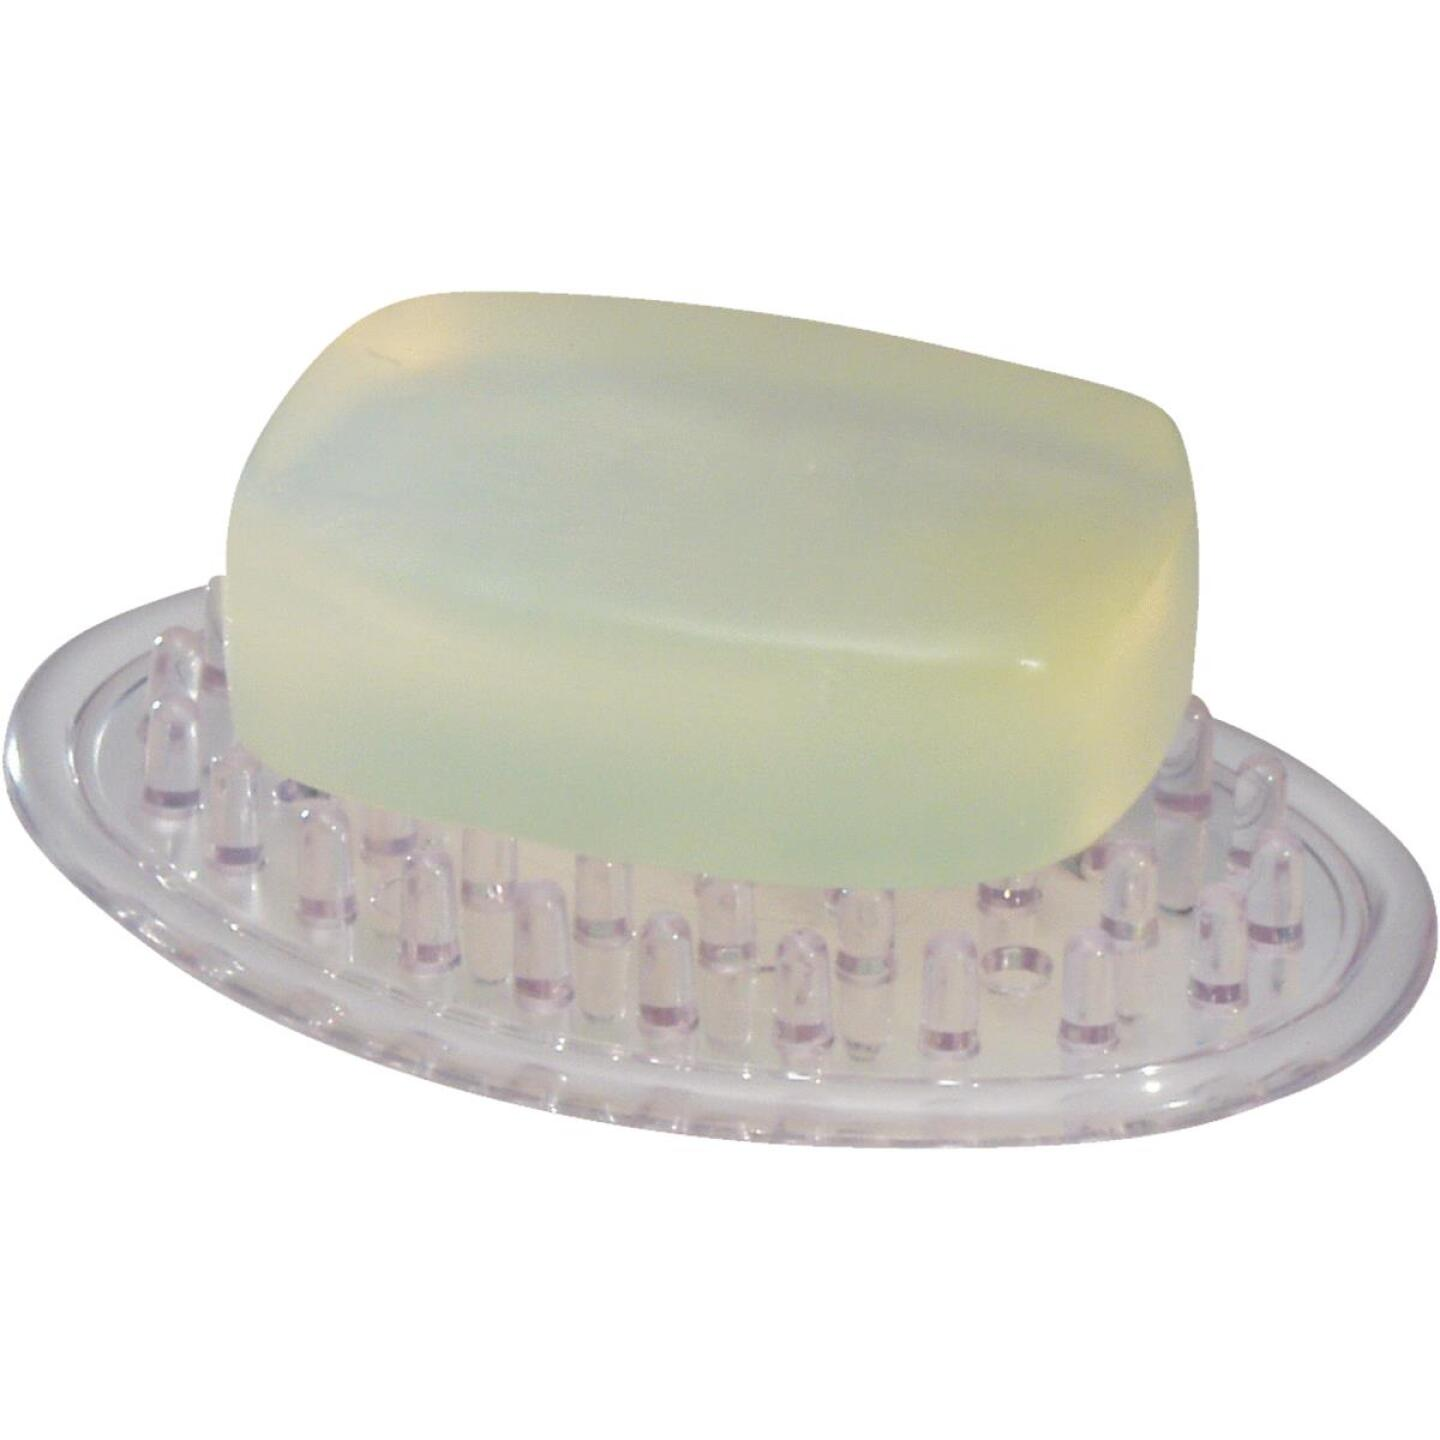 InterDesign Clear Soap Dish Image 1